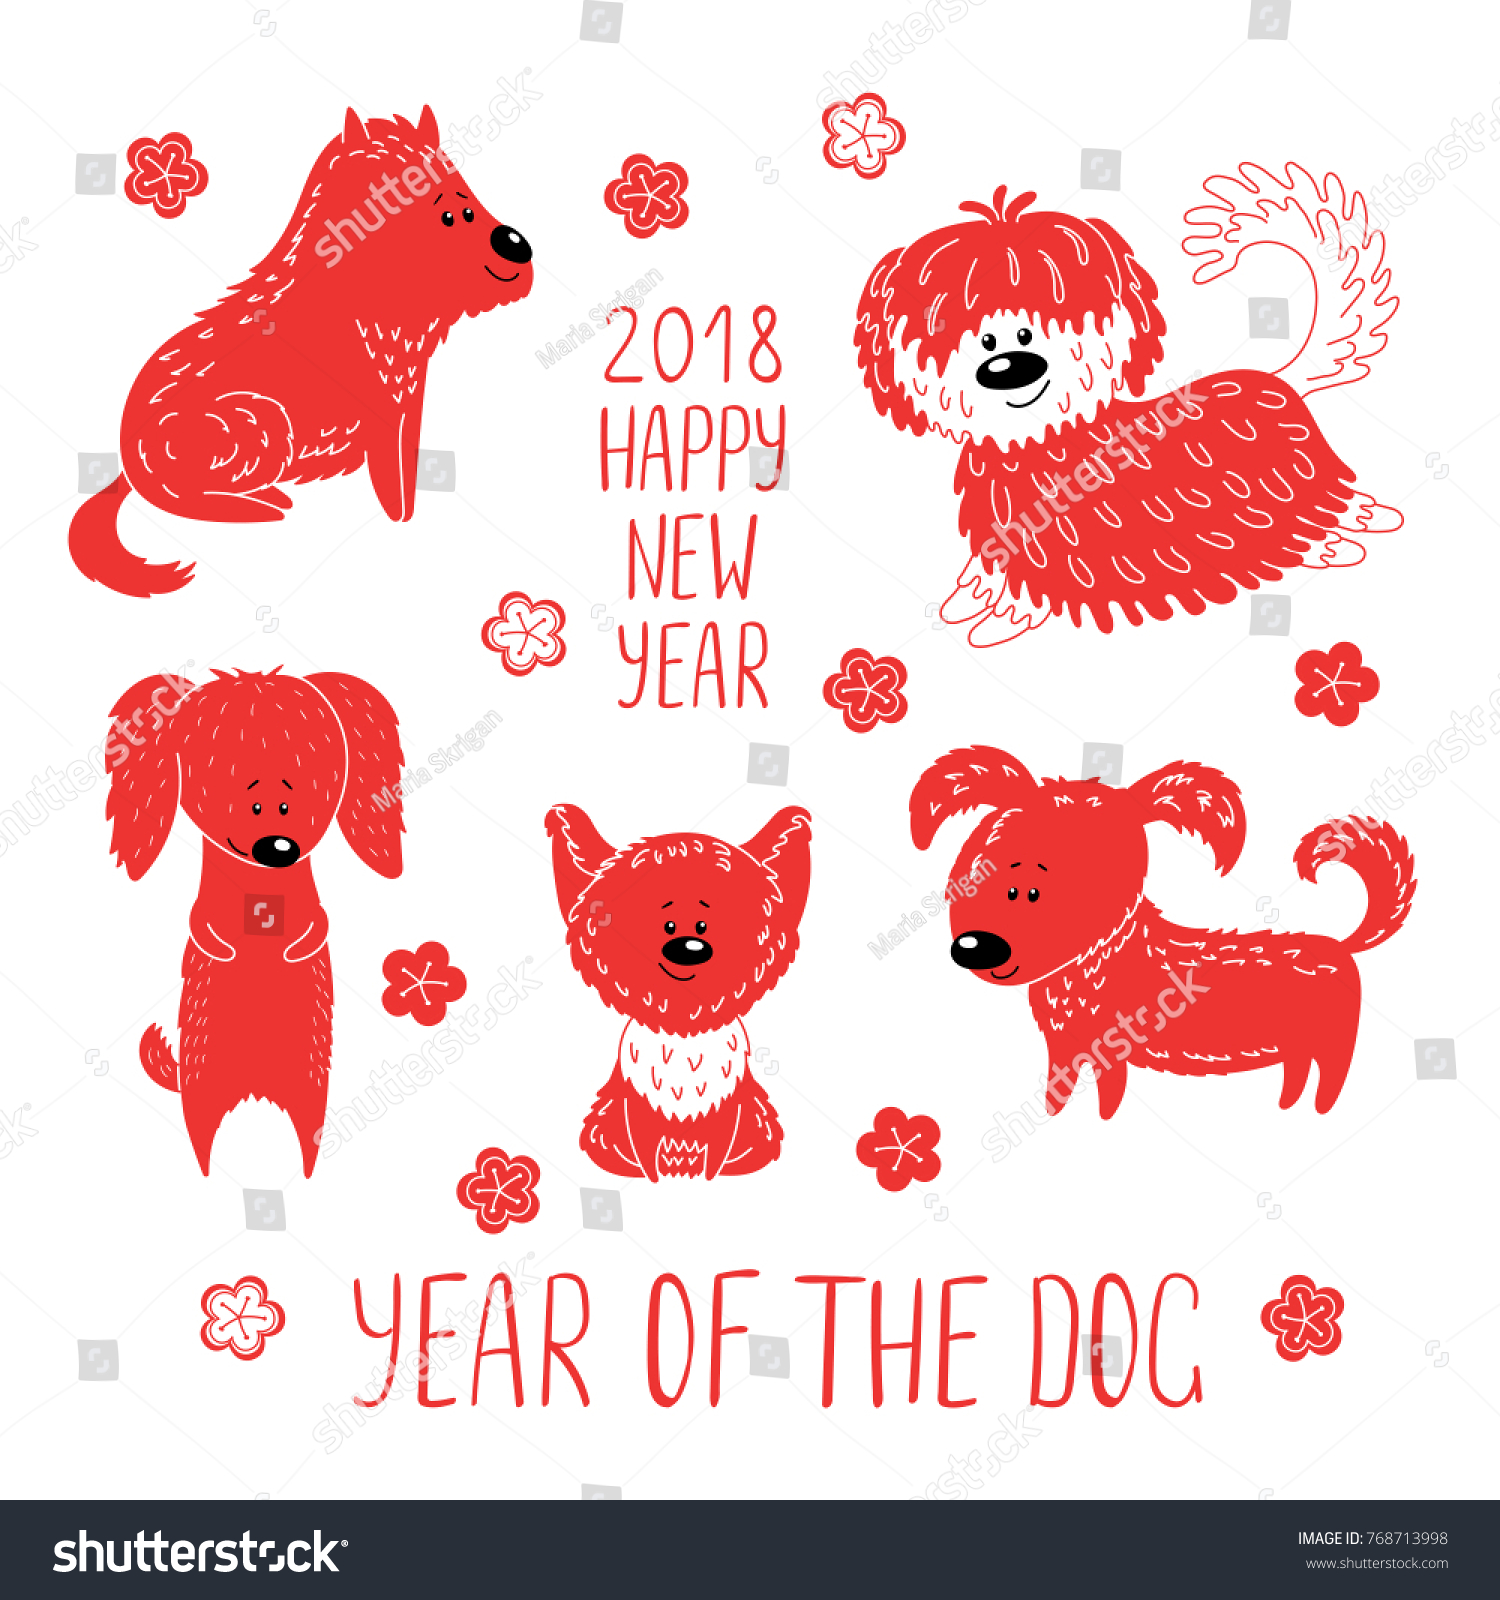 hand drawn new year greeting card with cute funny cartoon dogs typography isolated objects